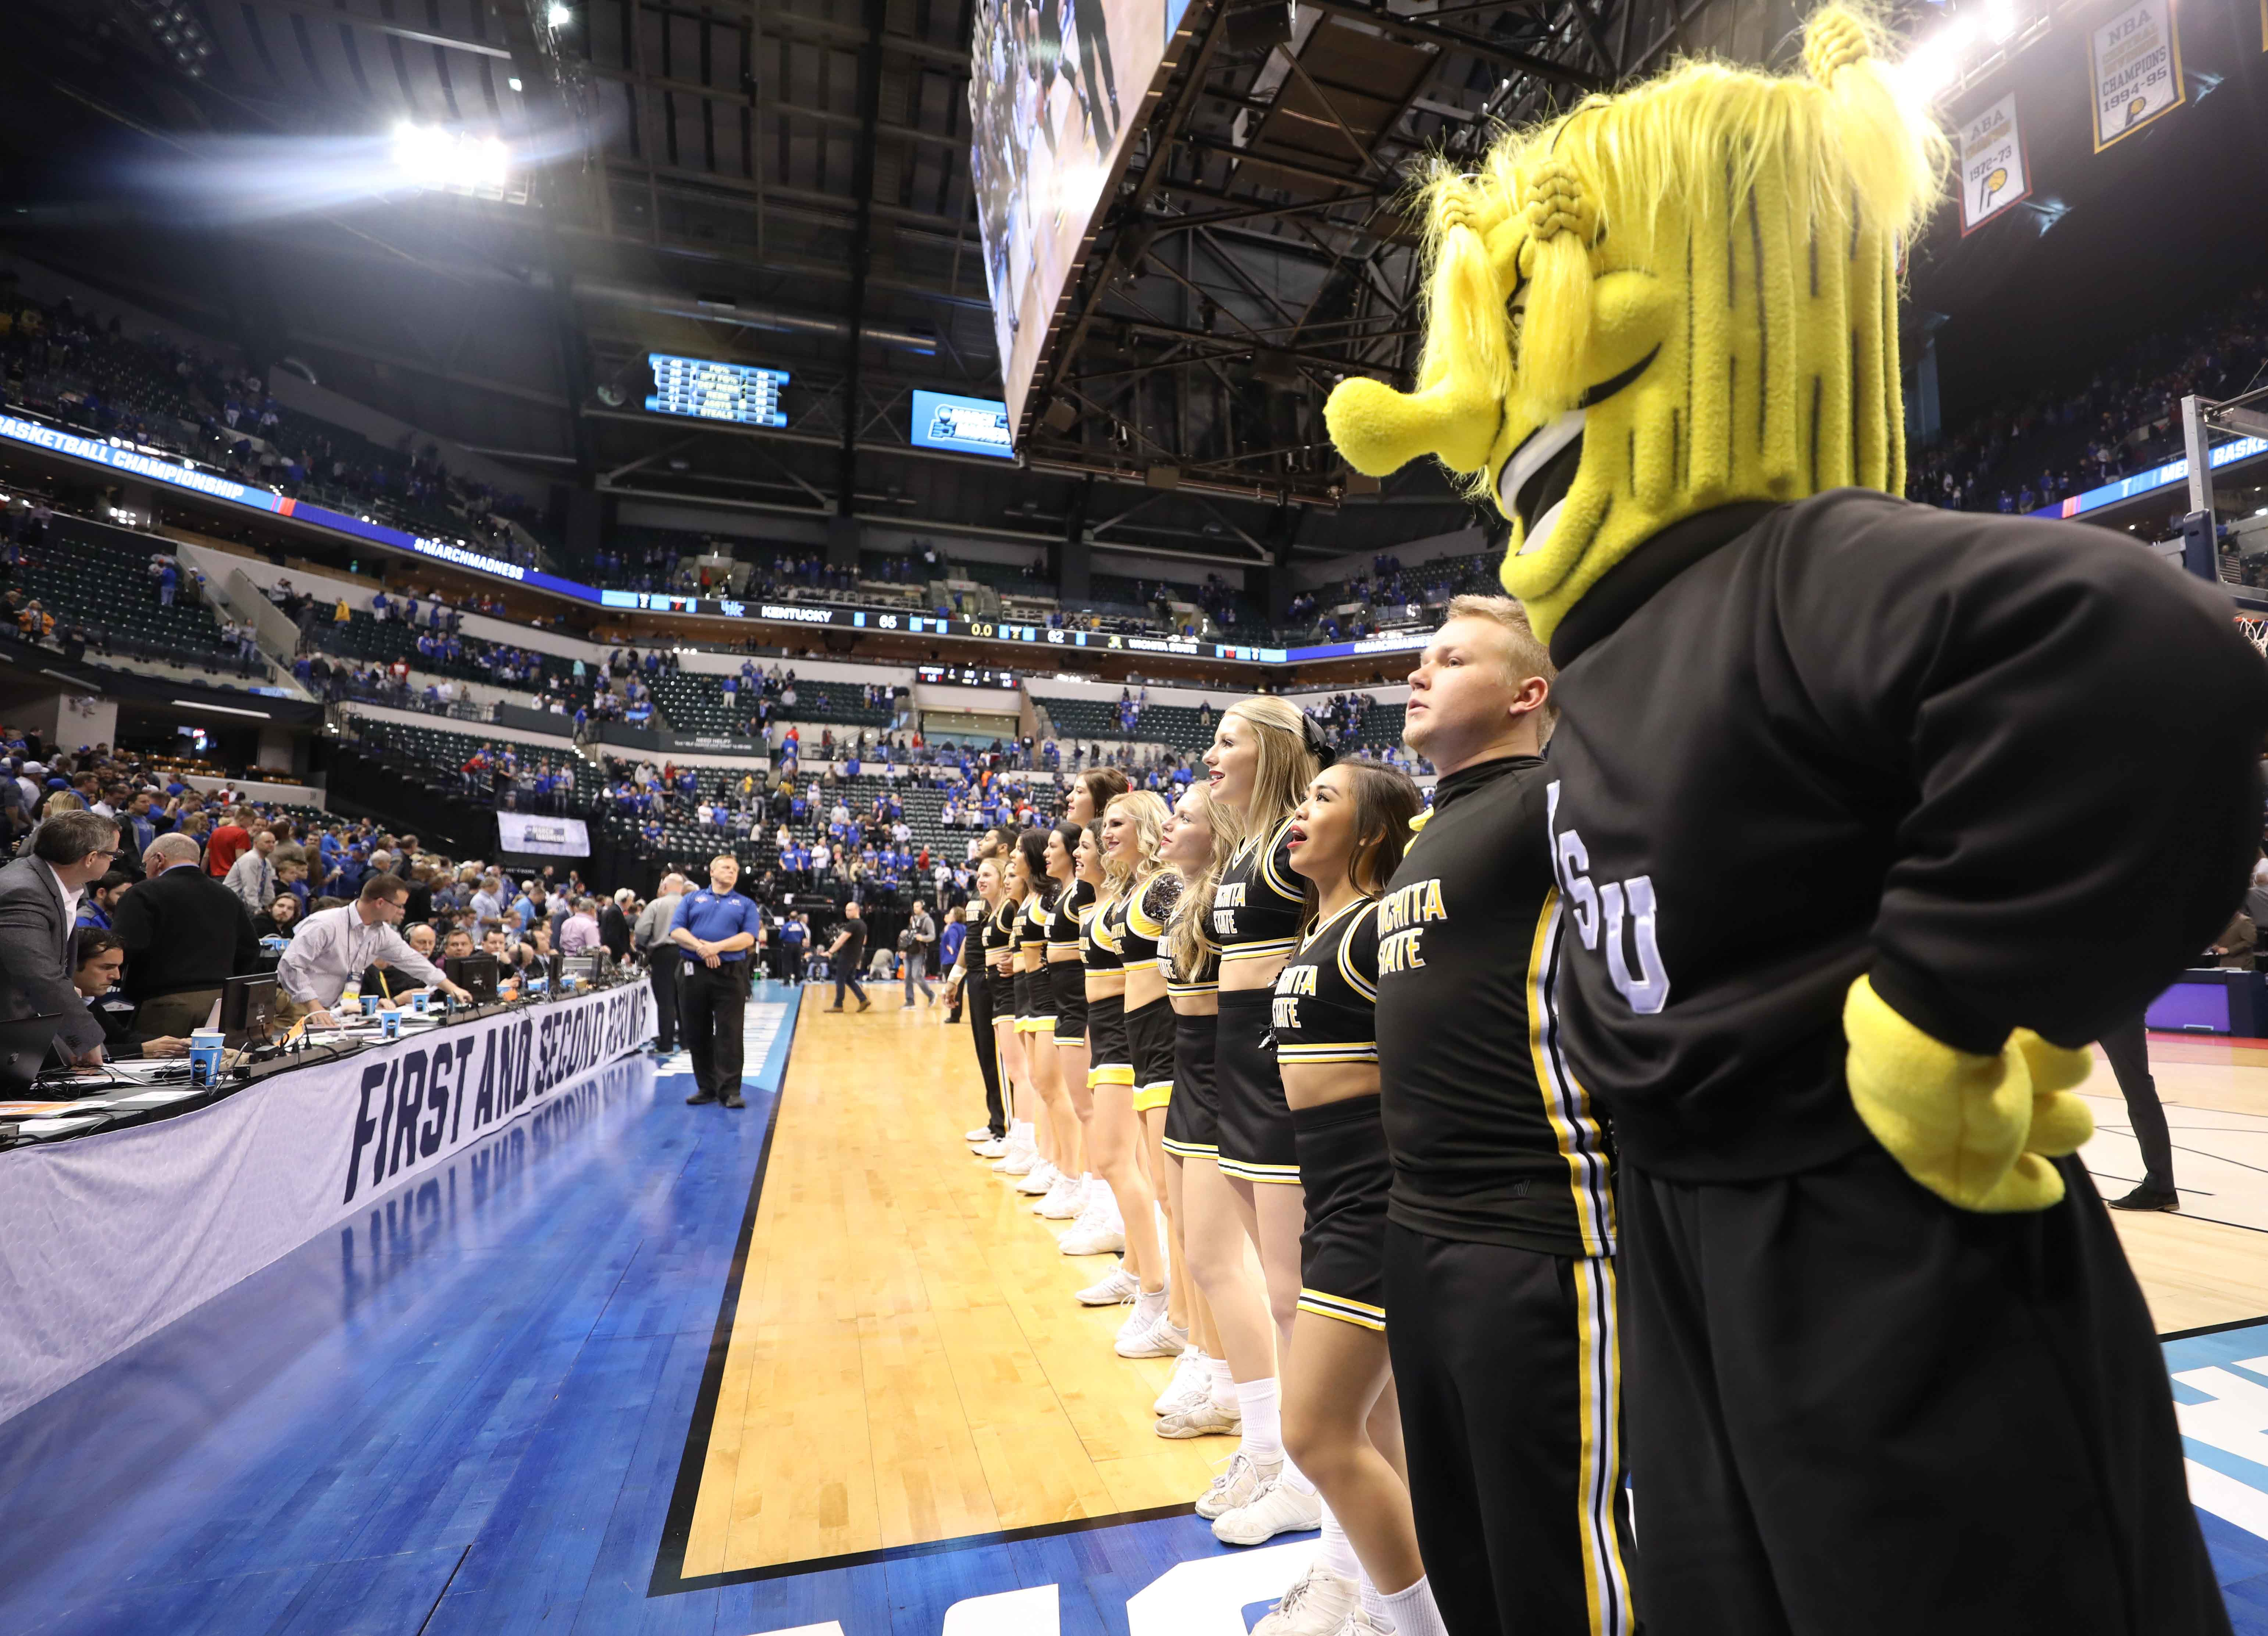 Wichita State cheer and dance team sing the alma mater in front of the fan section in Bankers Life Fieldhouse after the Shockers lost to Kentucky 65 – 62.  (Mar. 19, 2017)